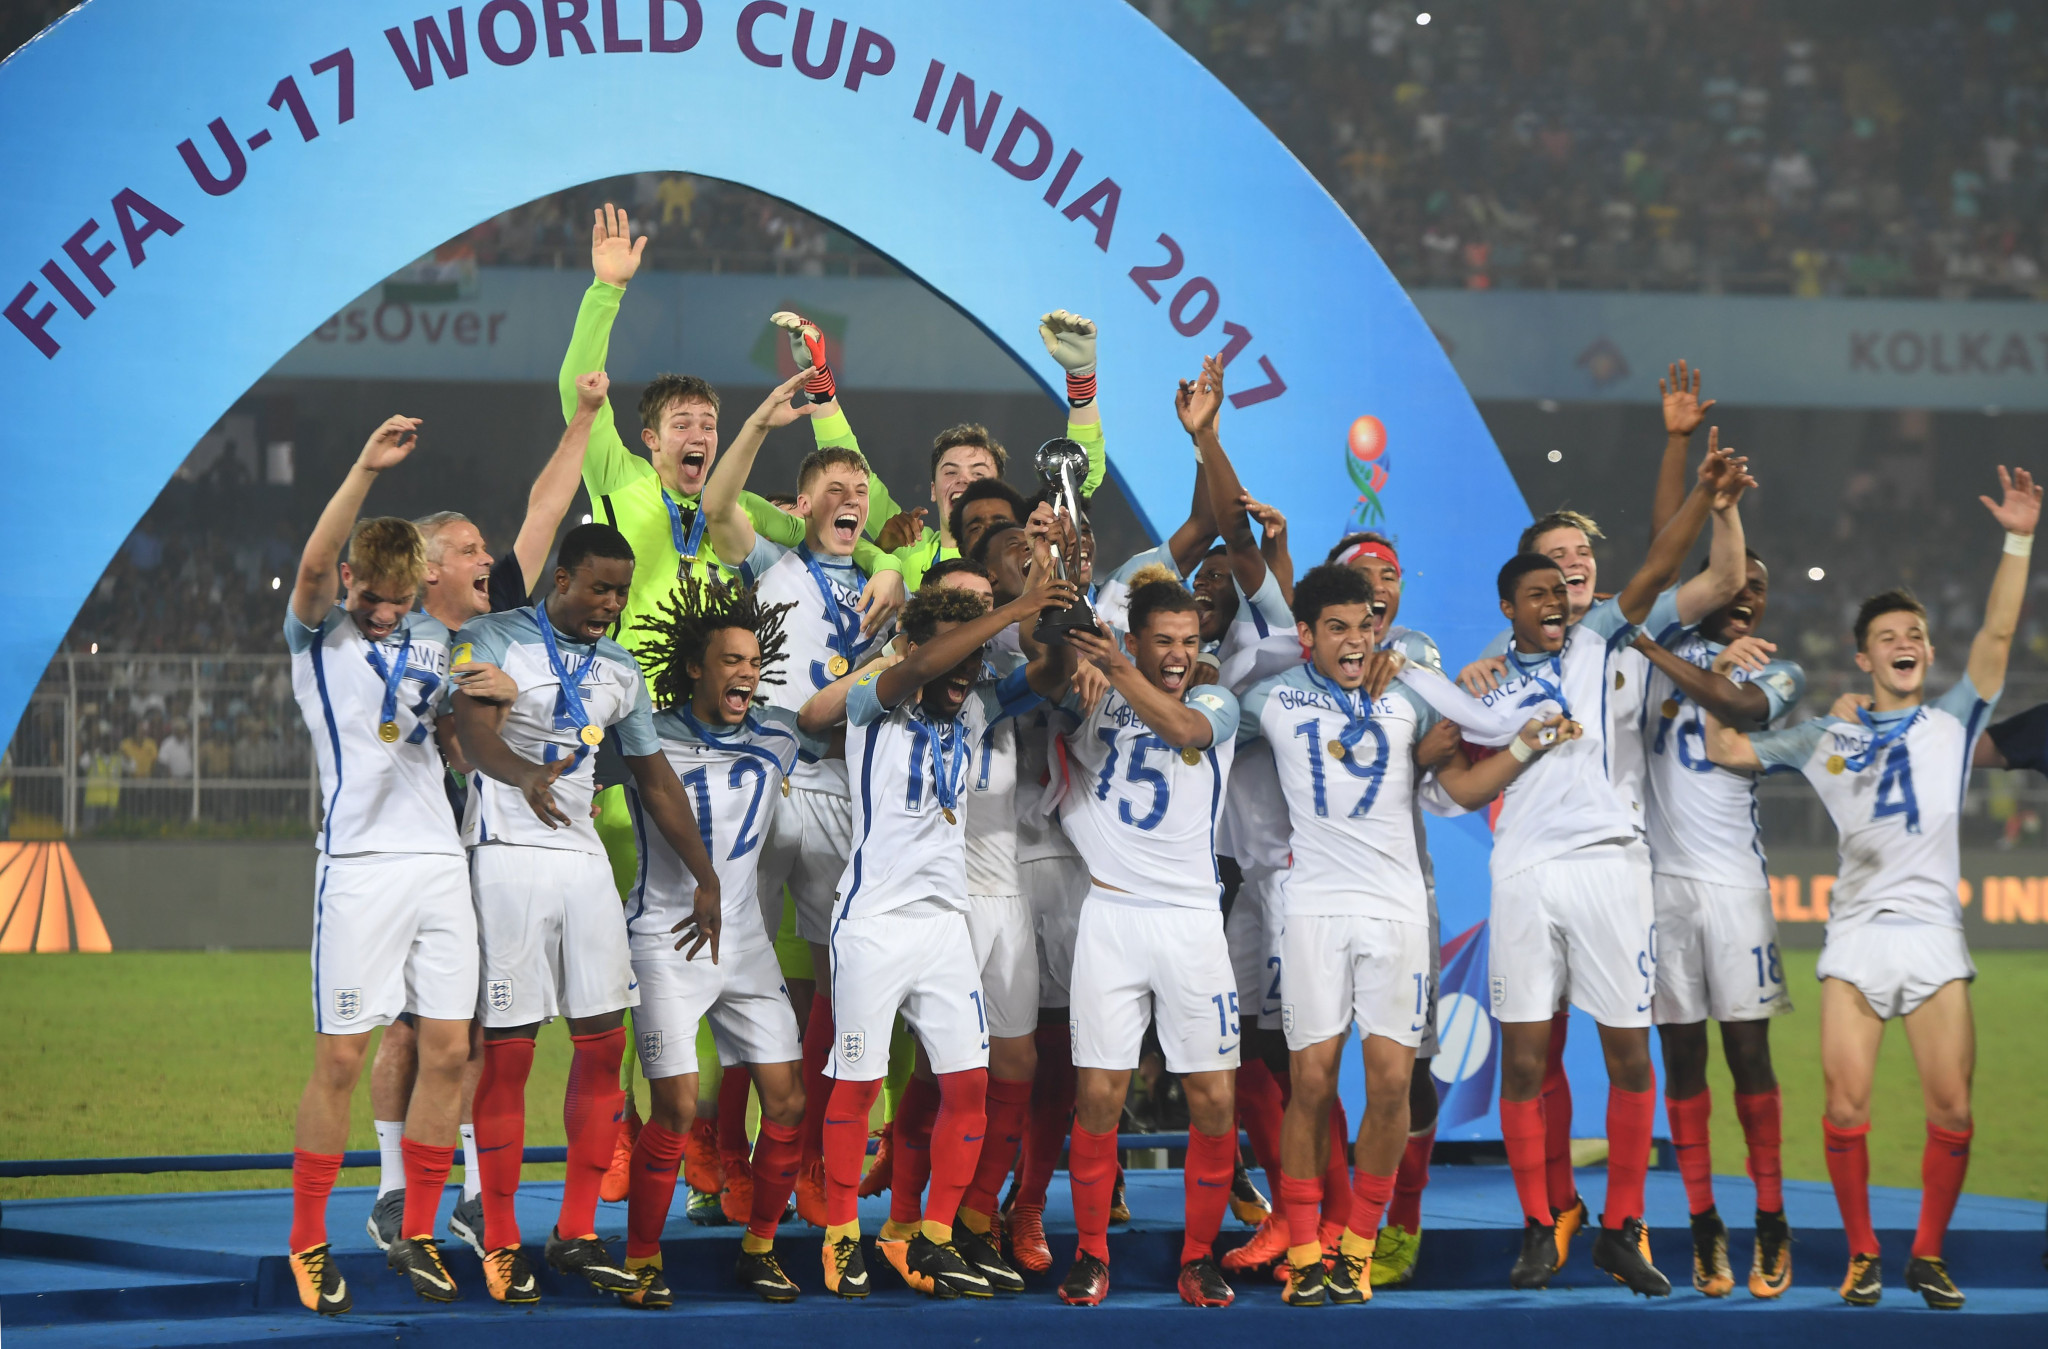 England come from behind to stun Spain in FIFA Under-17 World Cup final